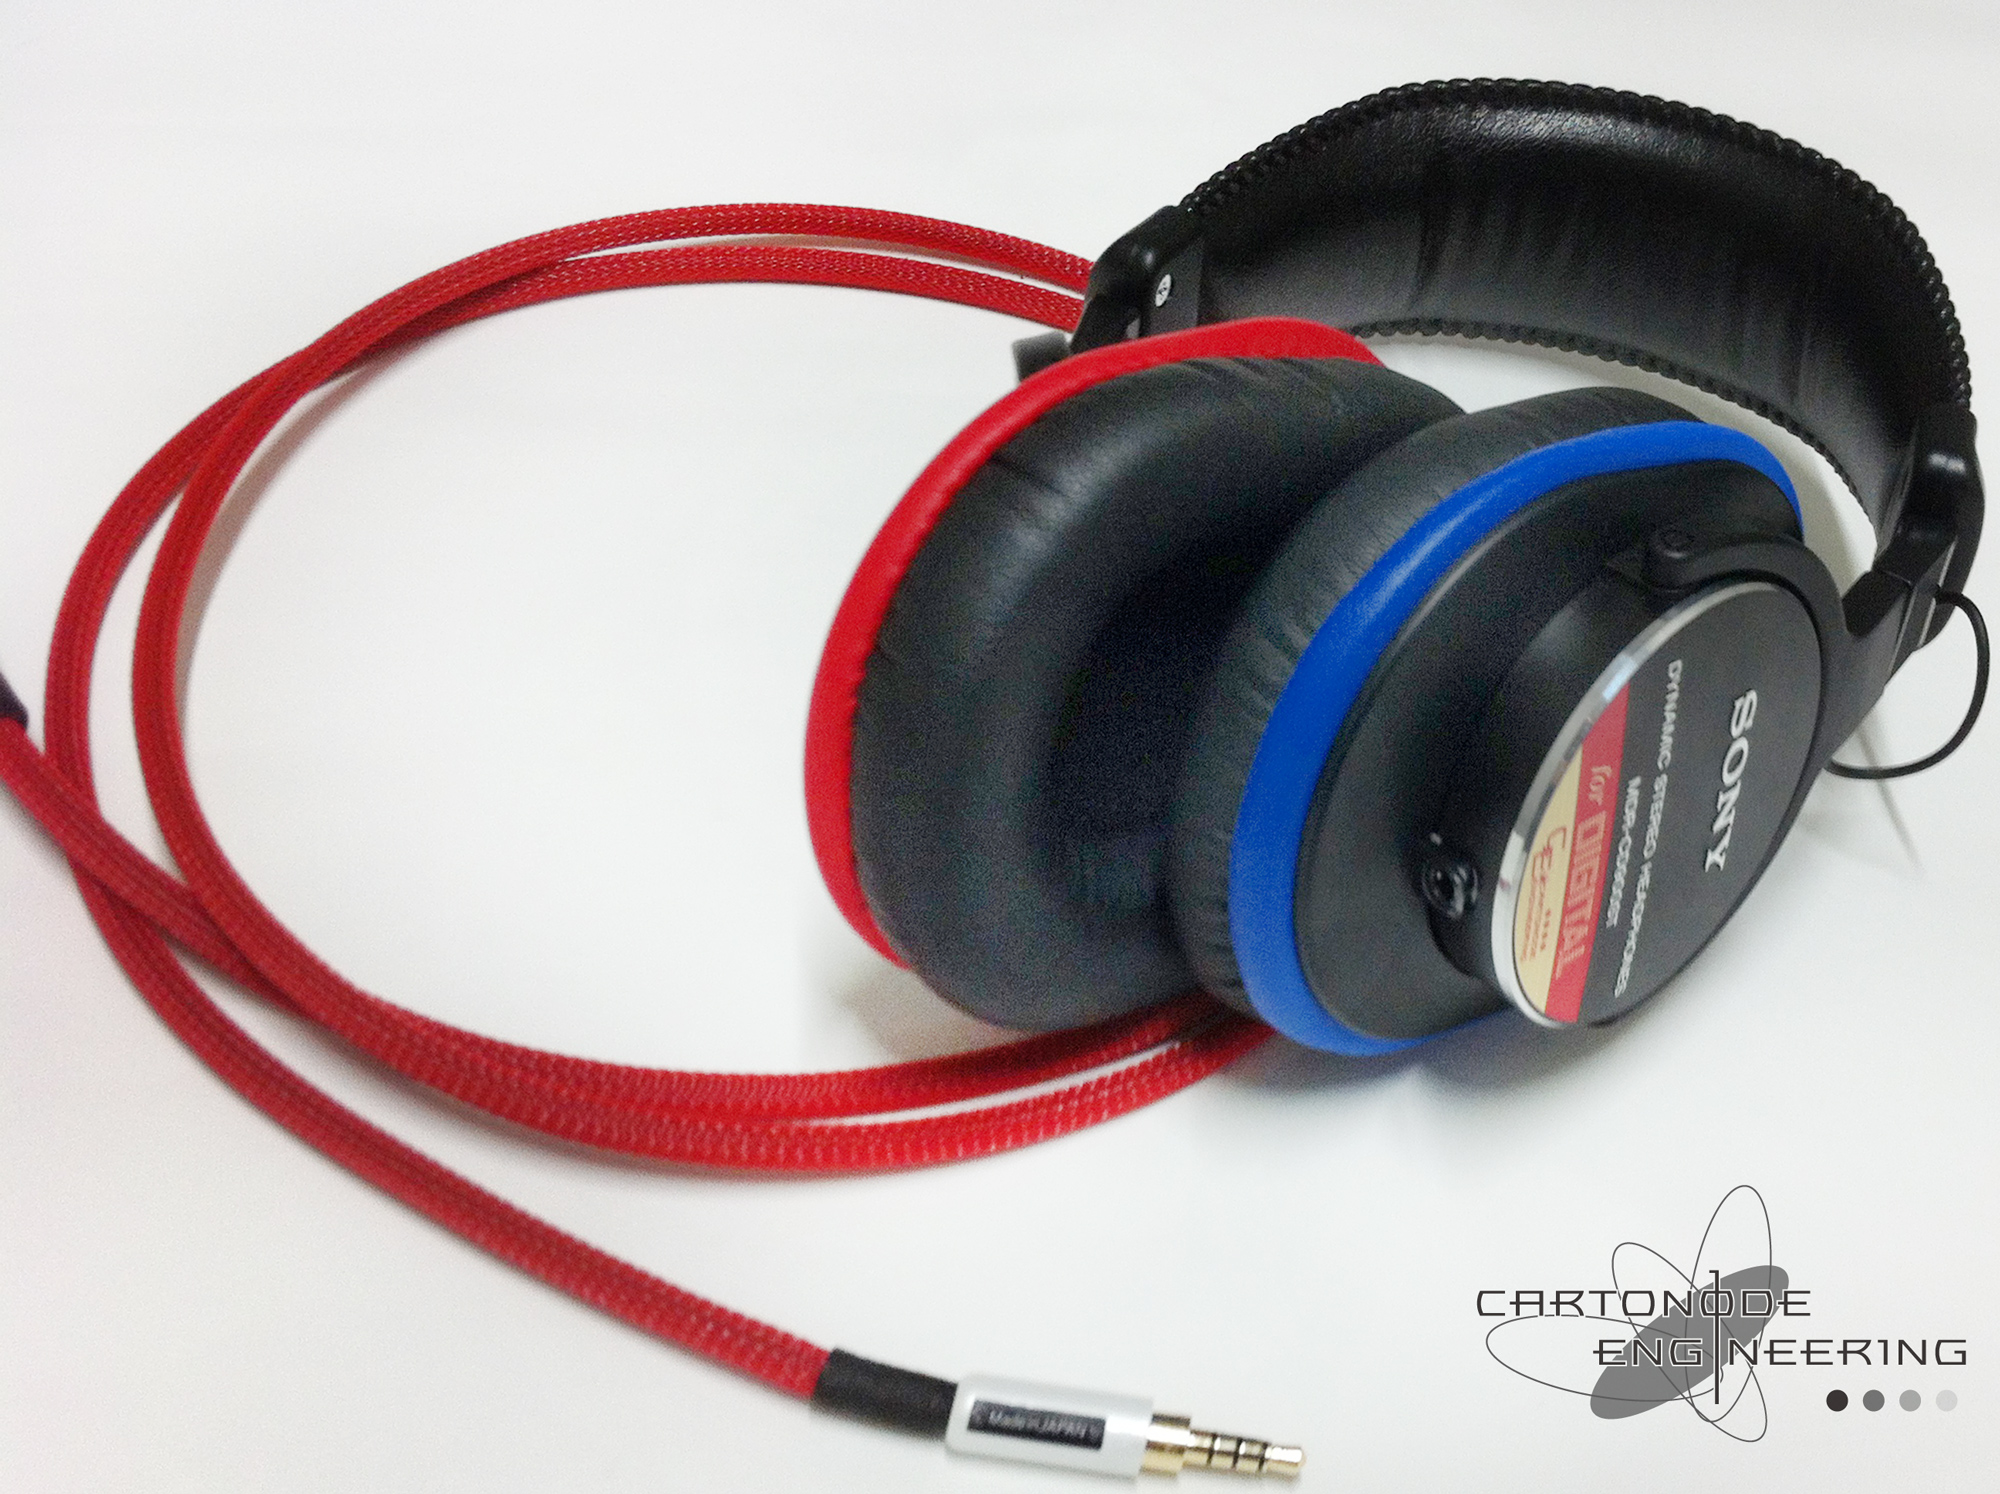 MDRCD900STMOD 4極脱着加工 メッシュケーブルRED